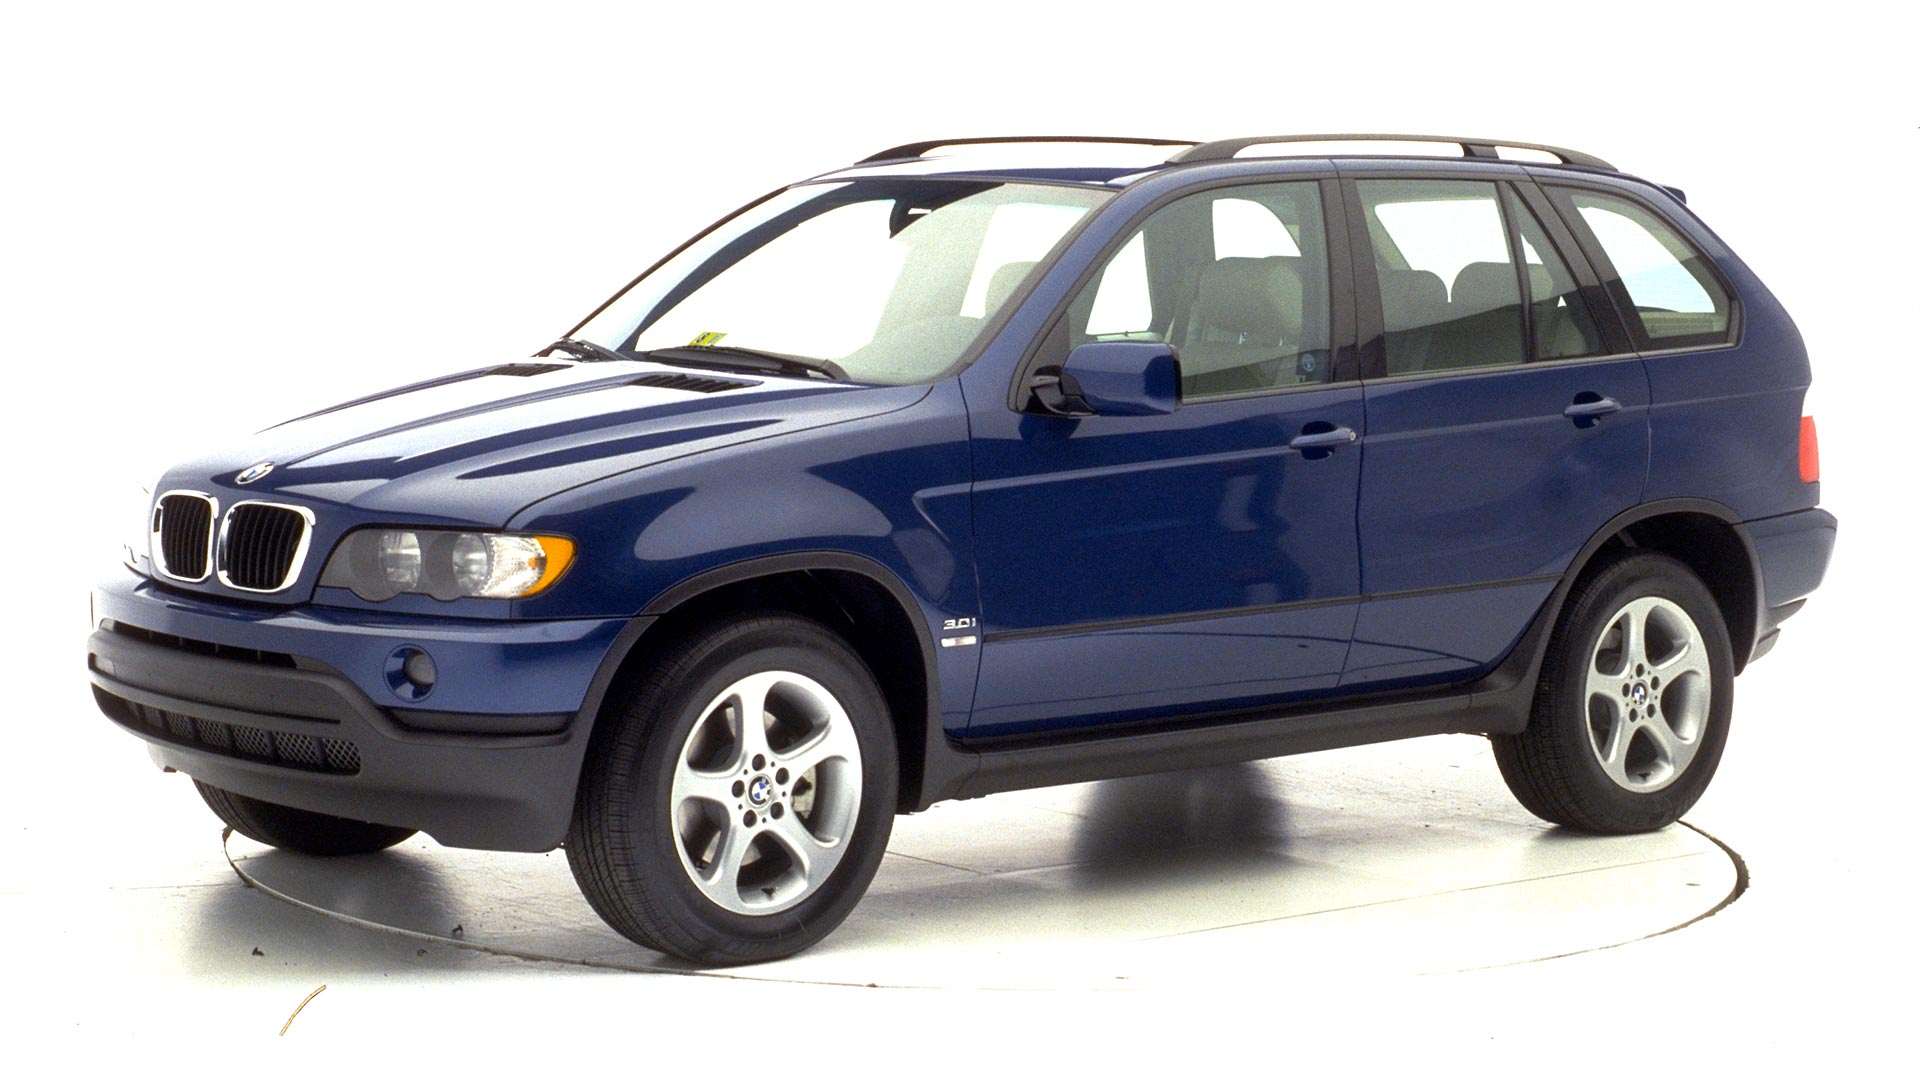 2005 BMW X5 4-door SUV